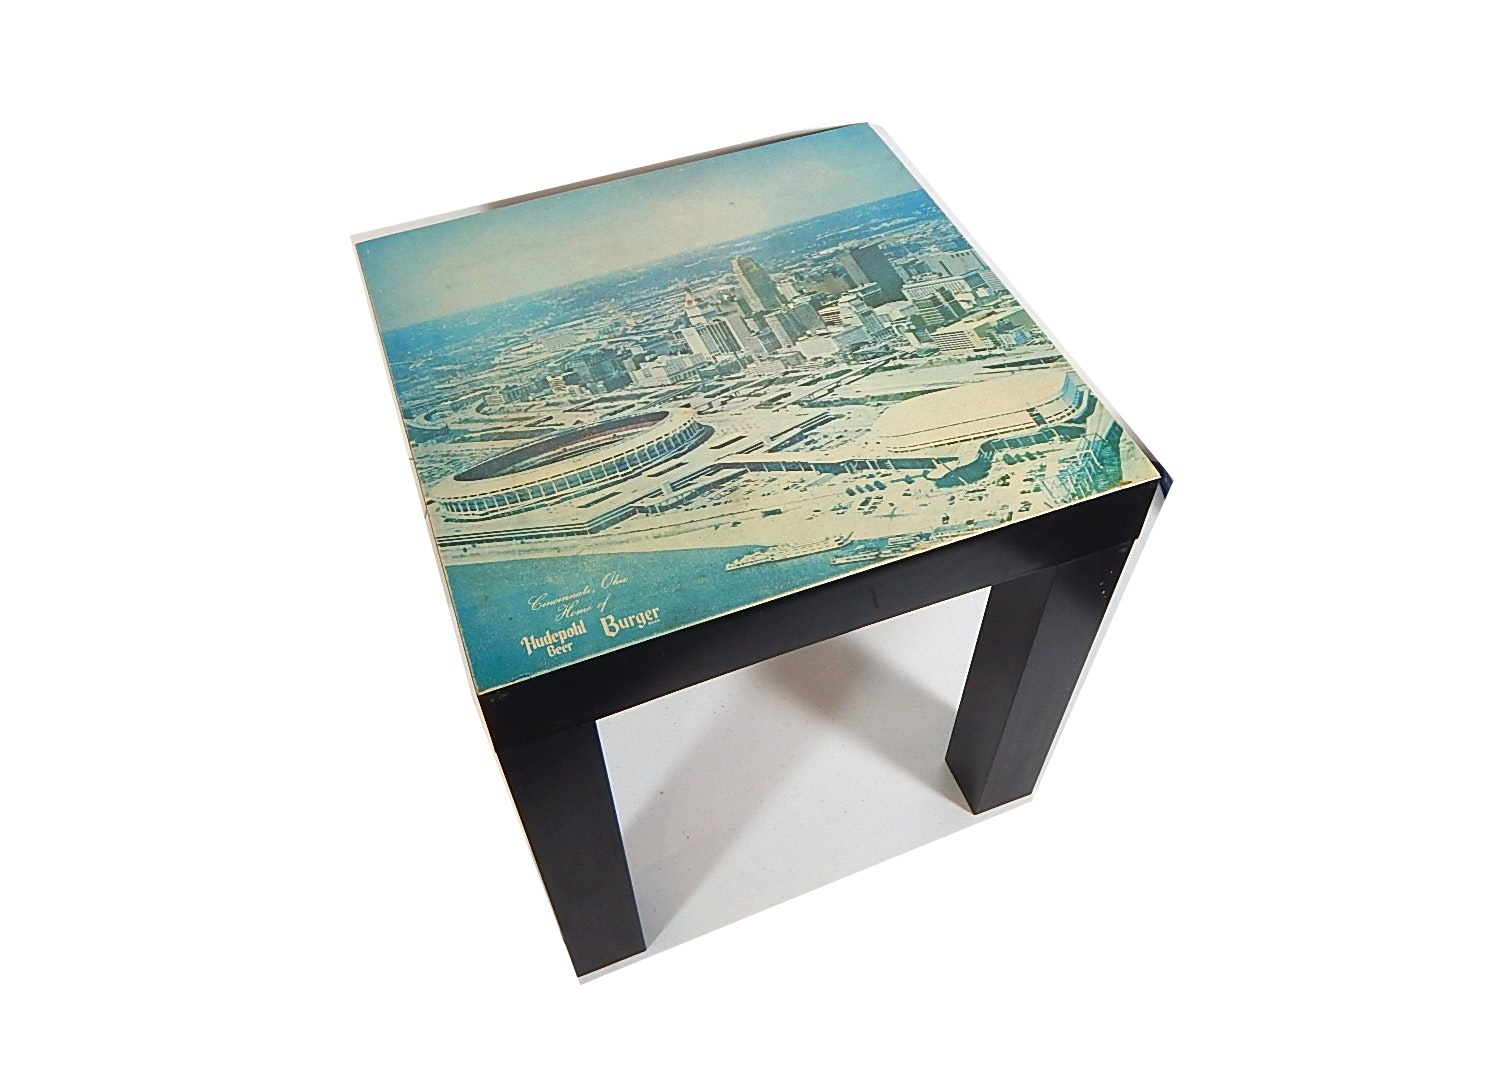 1970 Burger/Hudepohl Beer Stacking Table With Color Image of Riverfront Stadium